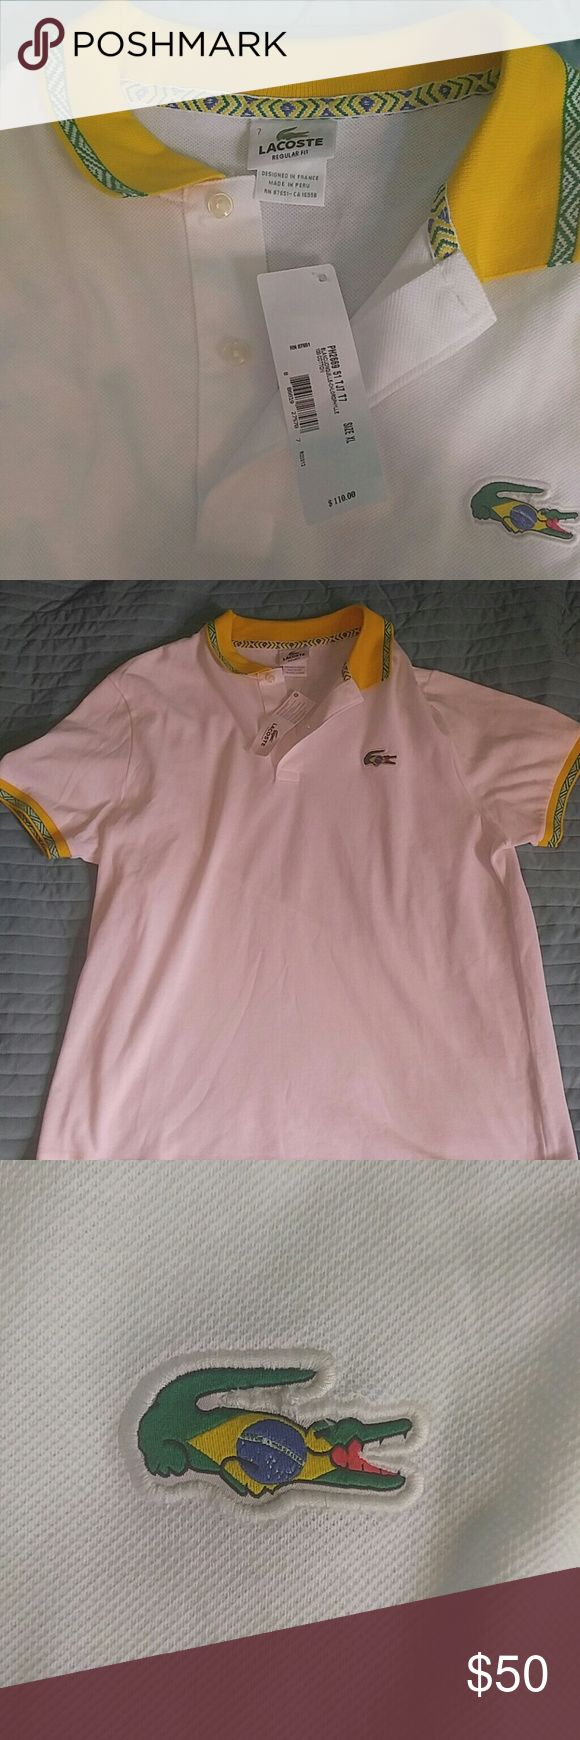 Lacoste Brazil polo shirt Sz 7 (XL) This is a rare item which is being sold new with the tags still attached. The price on this shirt is $110 and although it is new with tags I am willing to let it go to a good owner for less than half that! Features super stylish collar and piping design and Brazilian flag gator logo on the chest. Fantastic, head-turning addition to your spring or summer wardrobe! Lacoste Shirts Polos